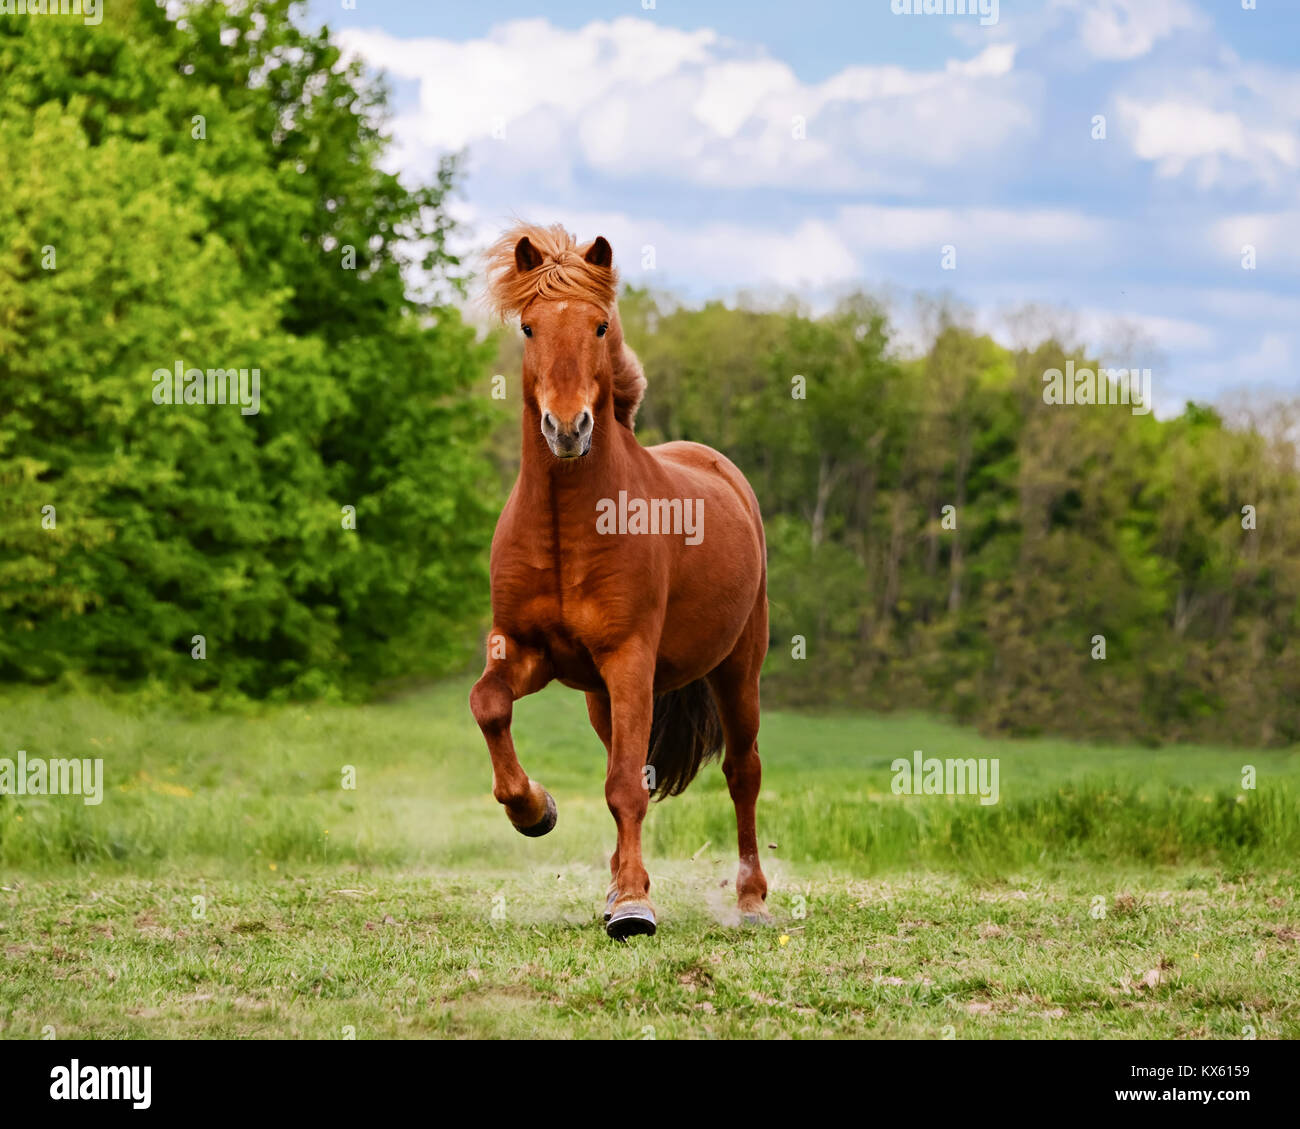 An icelandic horse runs at a tölt across a meadow, toelt is an unique natural gait of this horse breed,Germany. - Stock Image